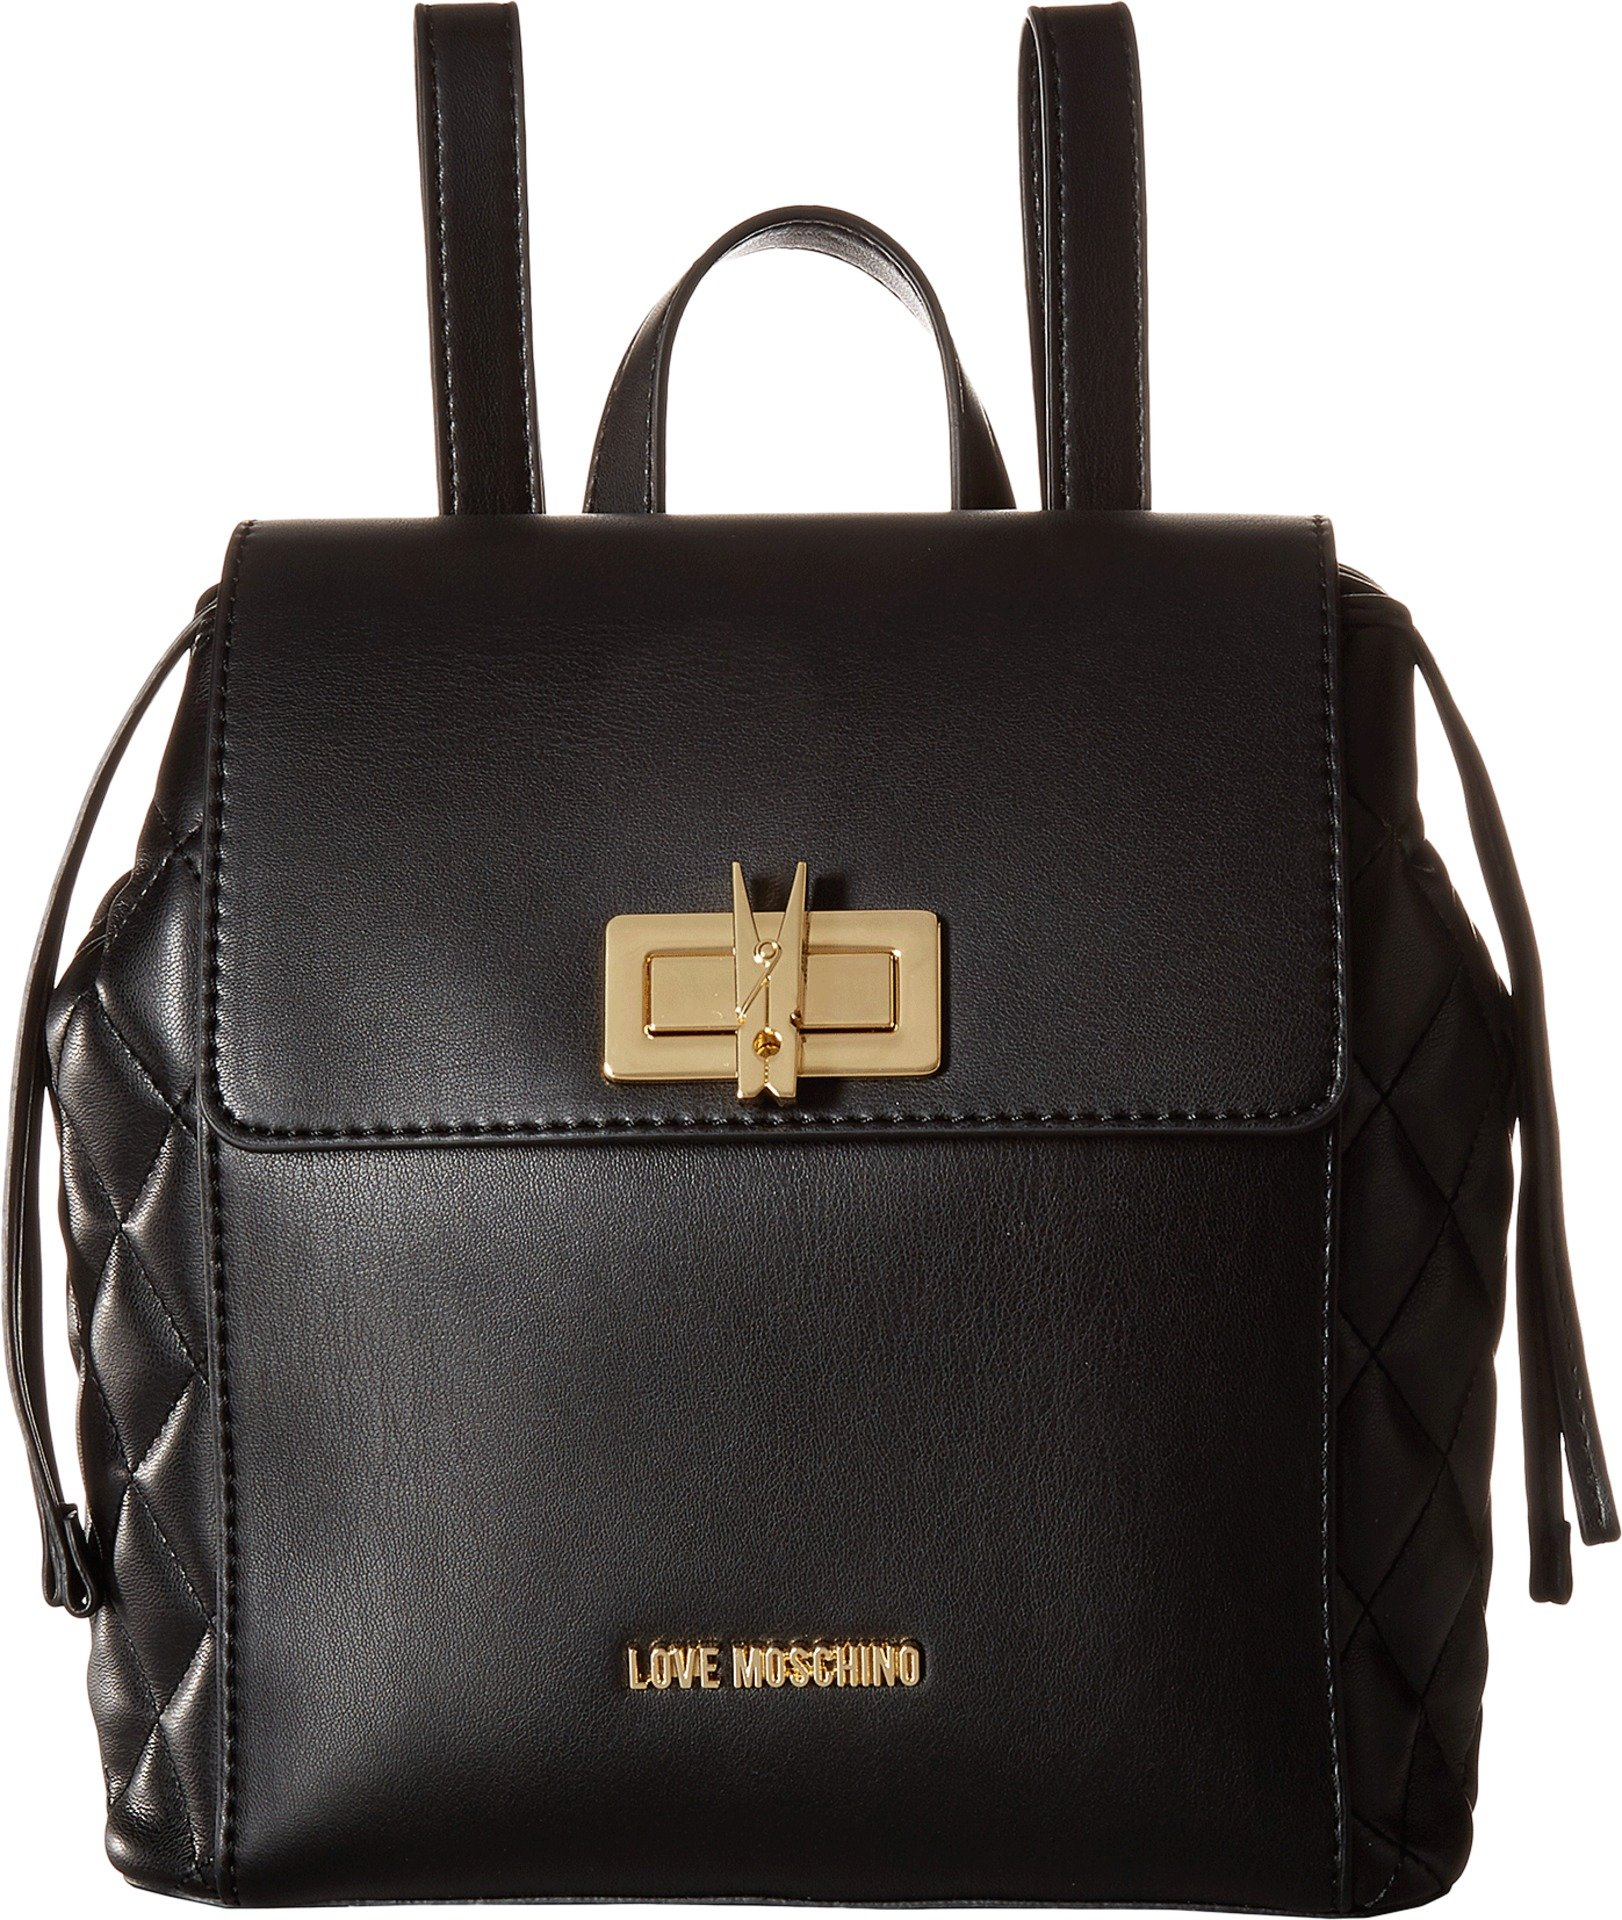 LOVE Moschino Women's Fashion Quilted Backpack Black One Size